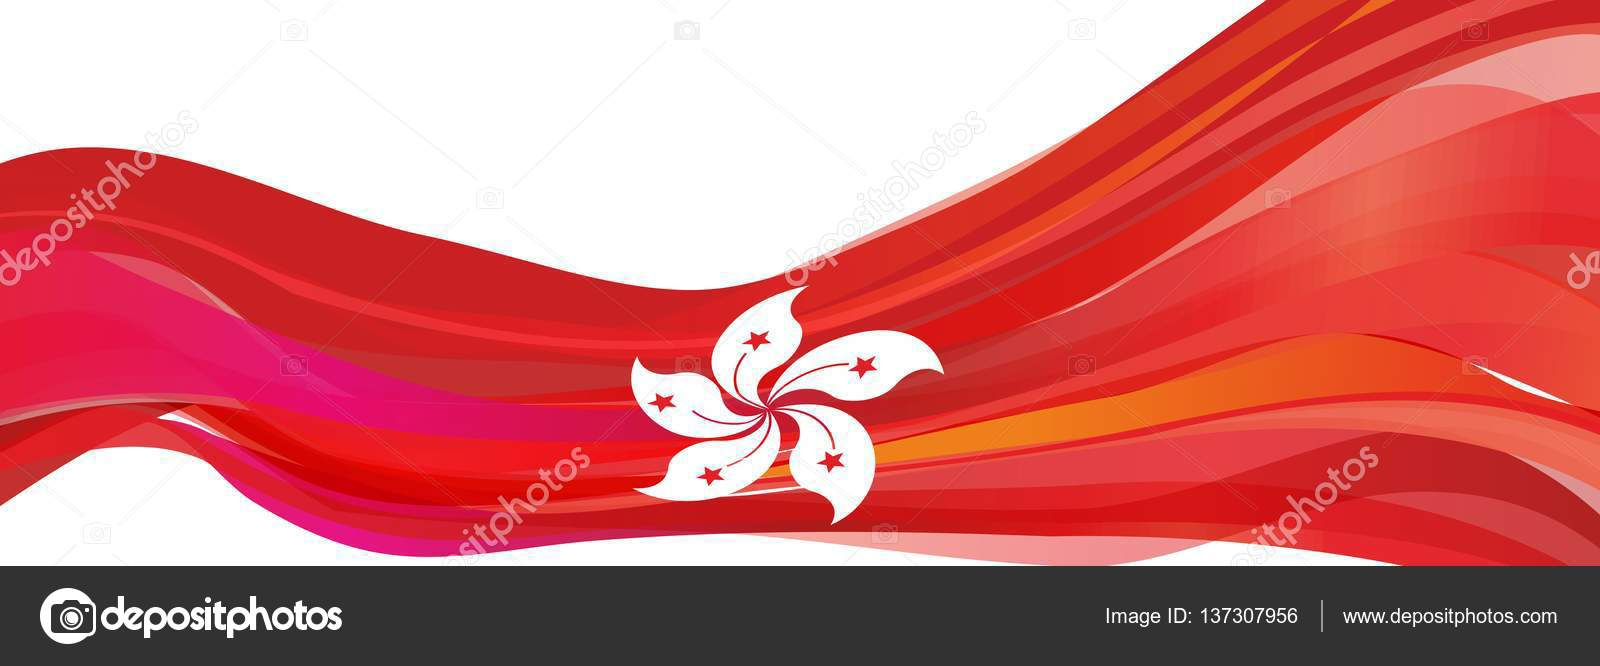 Red Flag With A White Flower Of The Chinese City Of Hong Kong